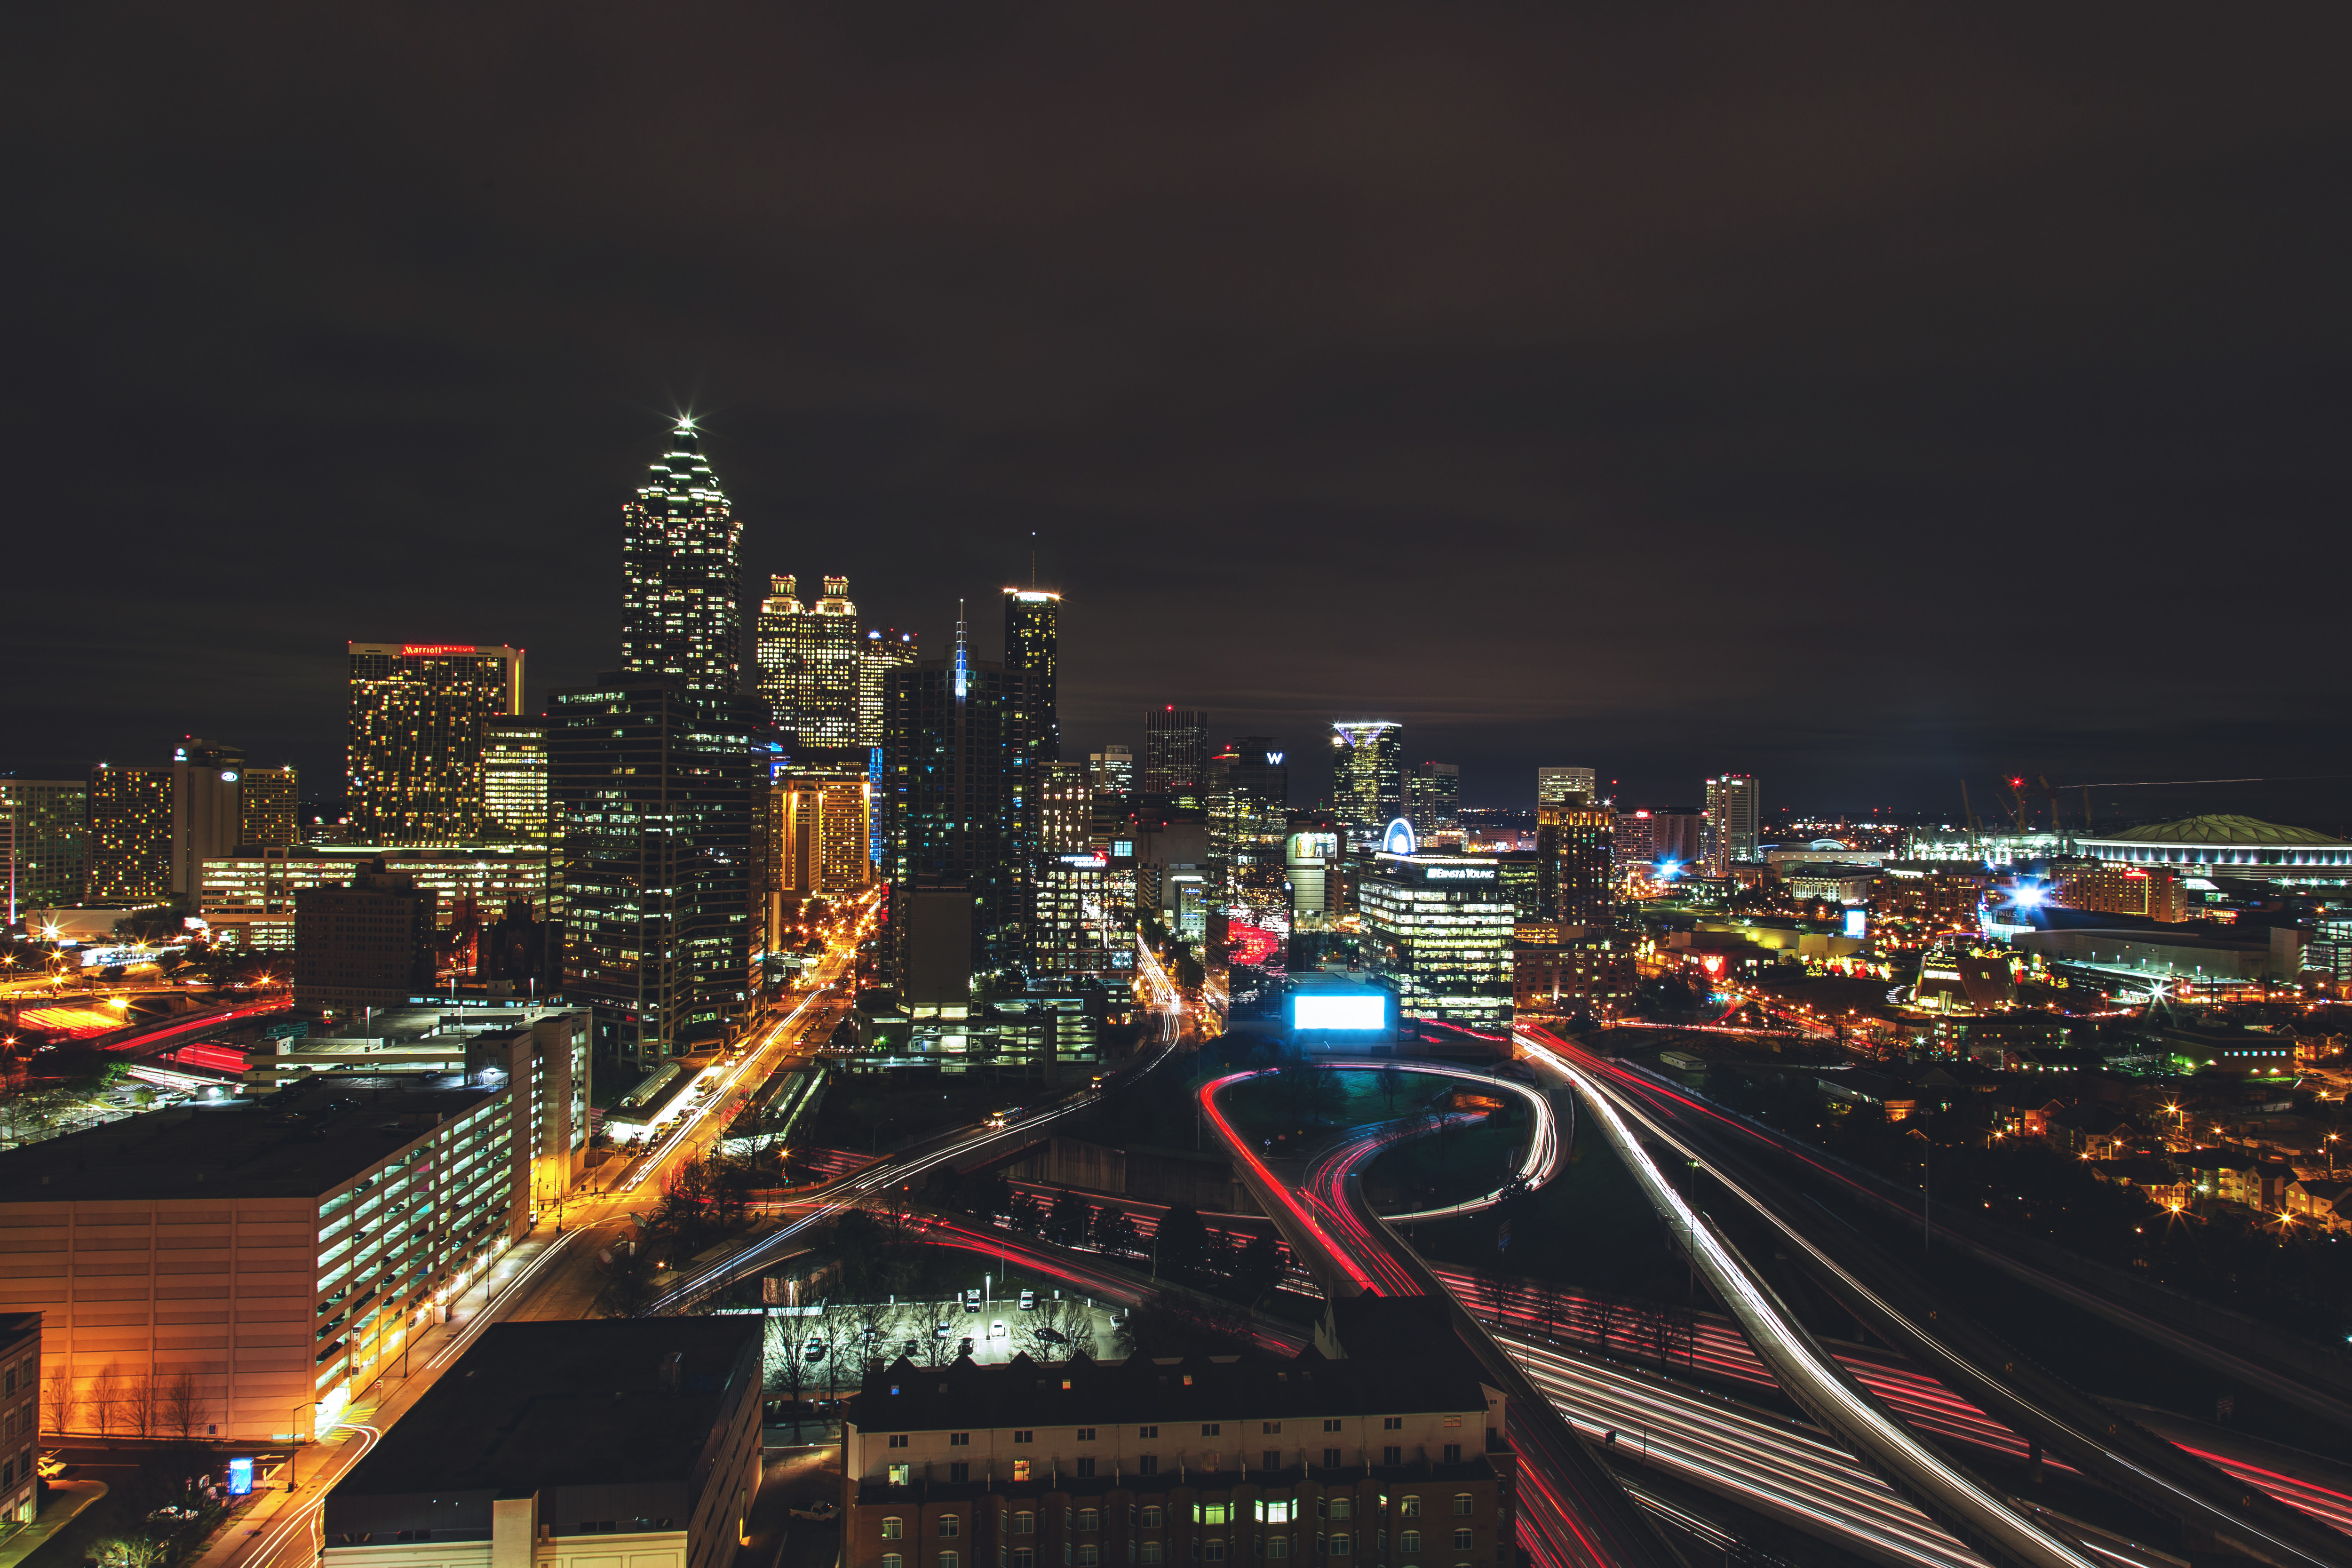 115817 download wallpaper Night City, City Lights, View From Above, Night, Architecture, Cities screensavers and pictures for free